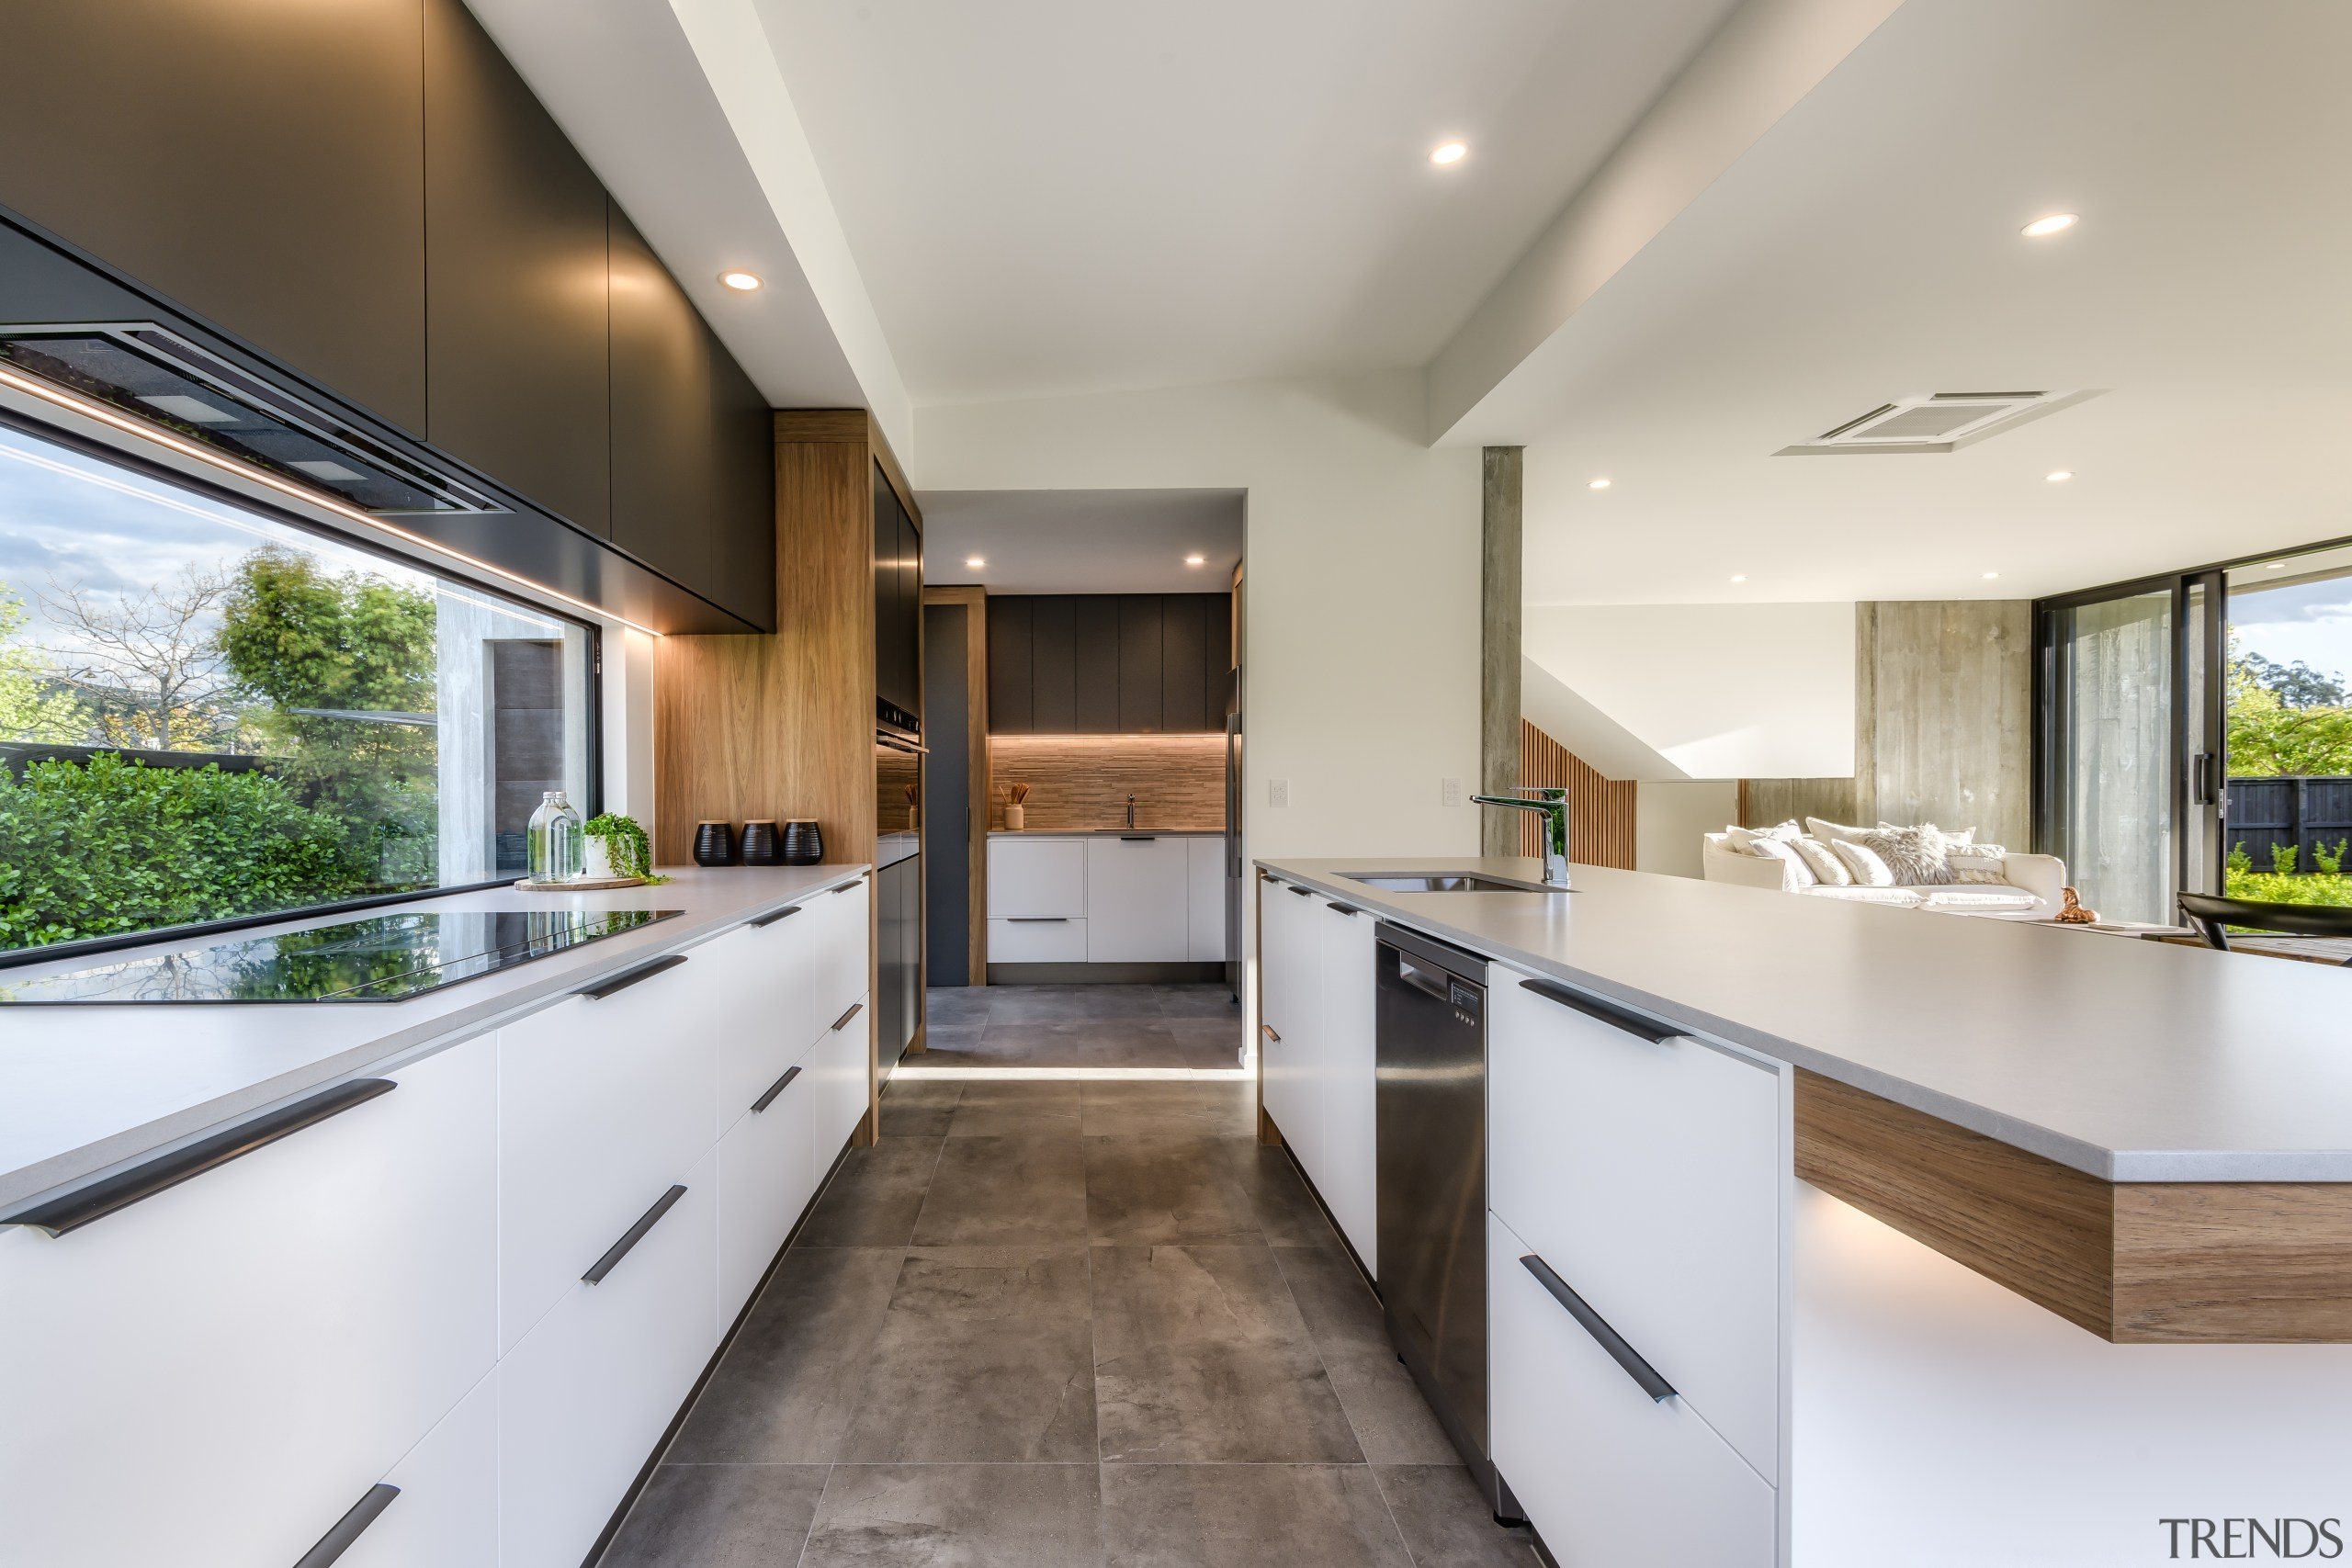 Having ventilation integrated into the overhead wall cabinetry